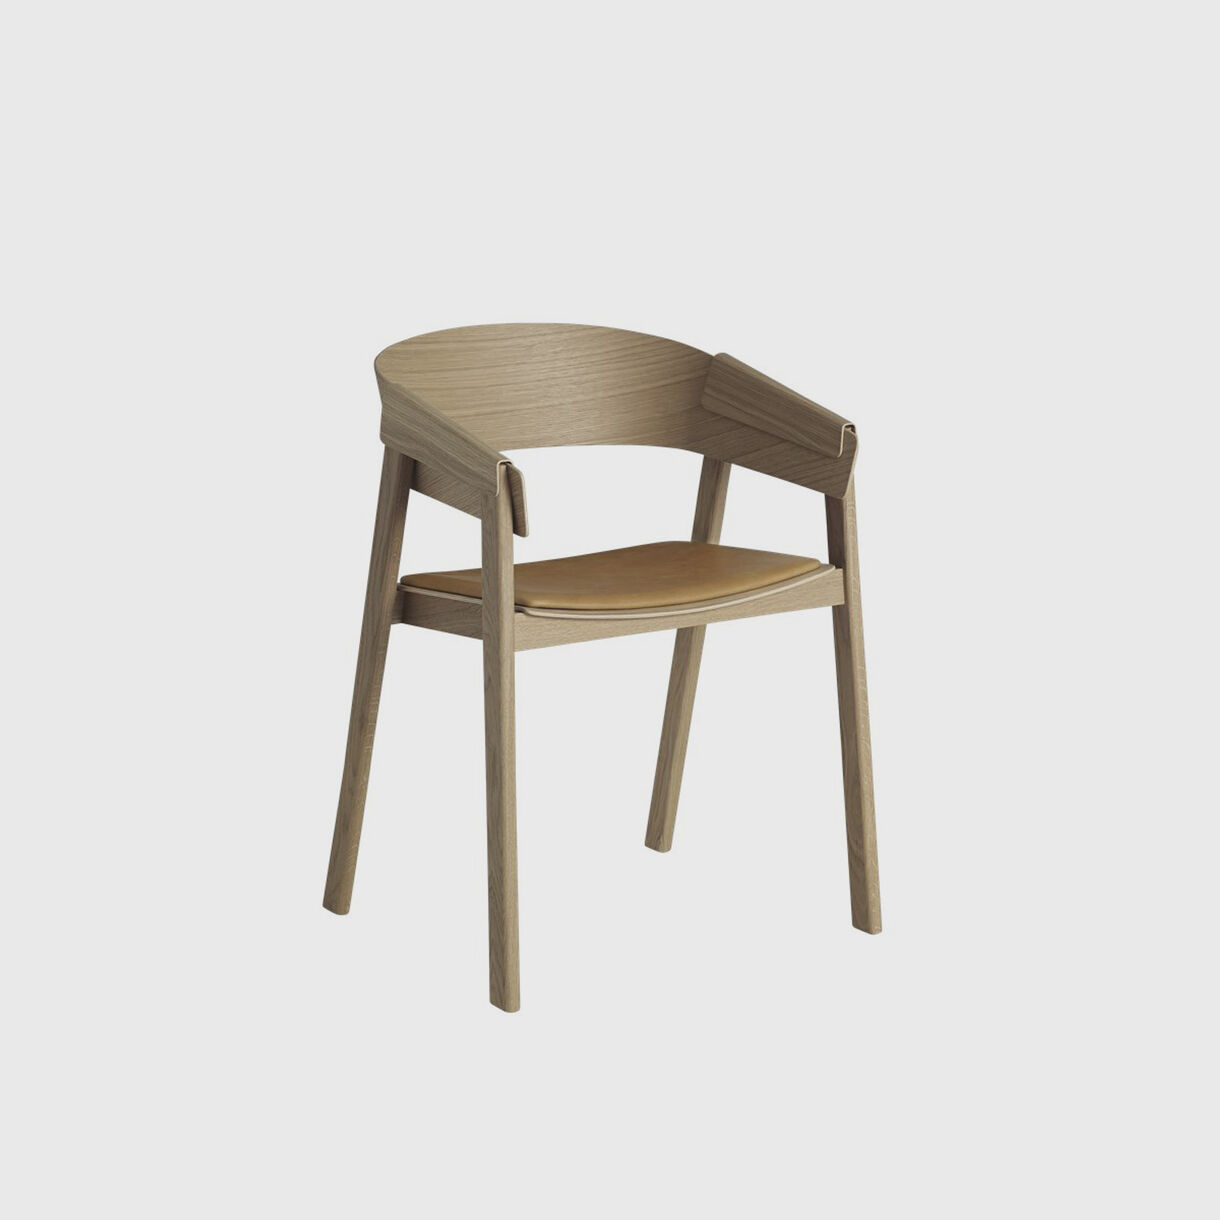 Cover Chair Upholstered, Oak & Cognac Leather